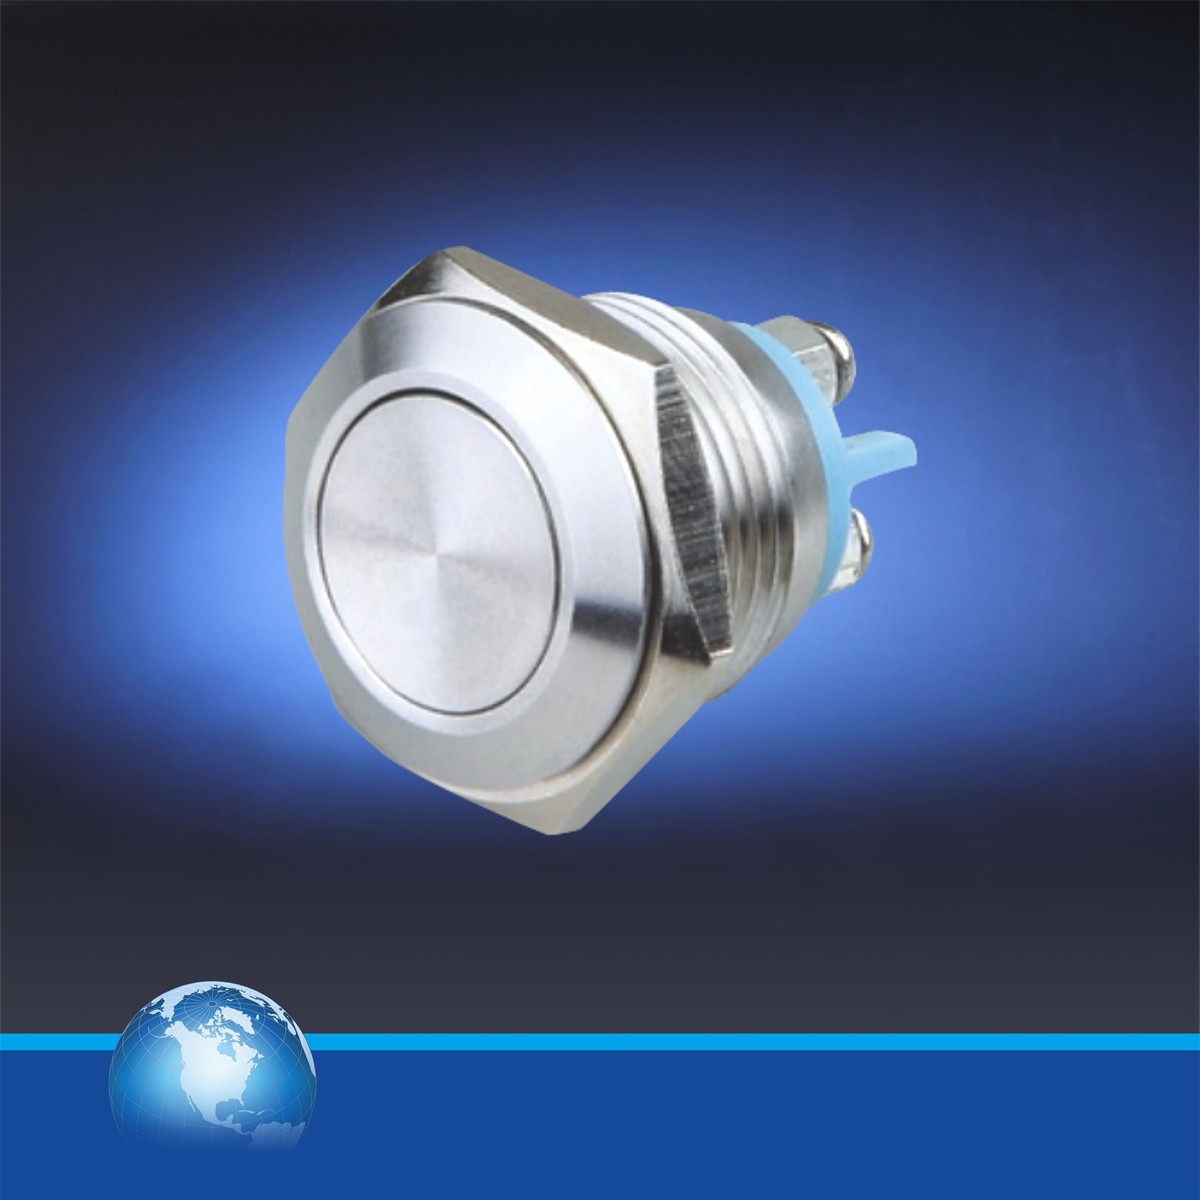 19mm Latch On Off Stainless Steel Push Button Switch For Electrical Details About 3a 250v 1 Circuit Latching Controls